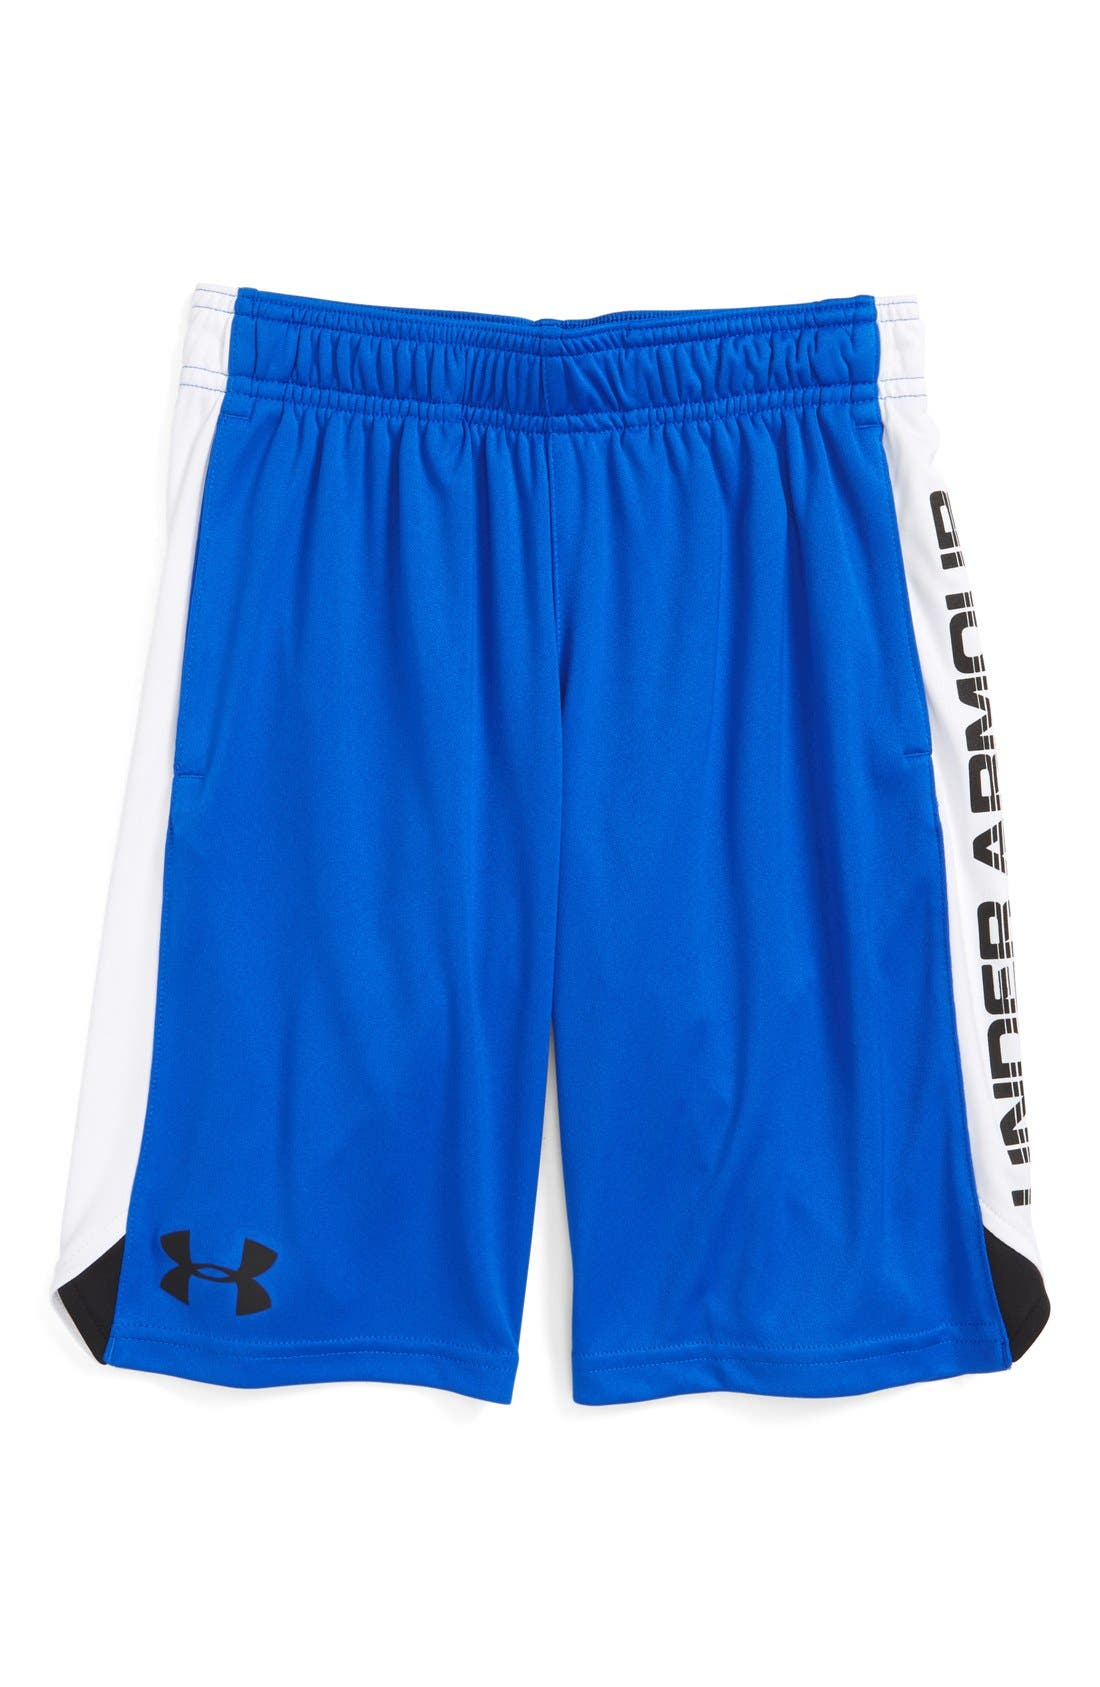 Alternate Image 1 Selected - Under Armour 'Eliminator' HeatGear® Shorts (Big Boys)